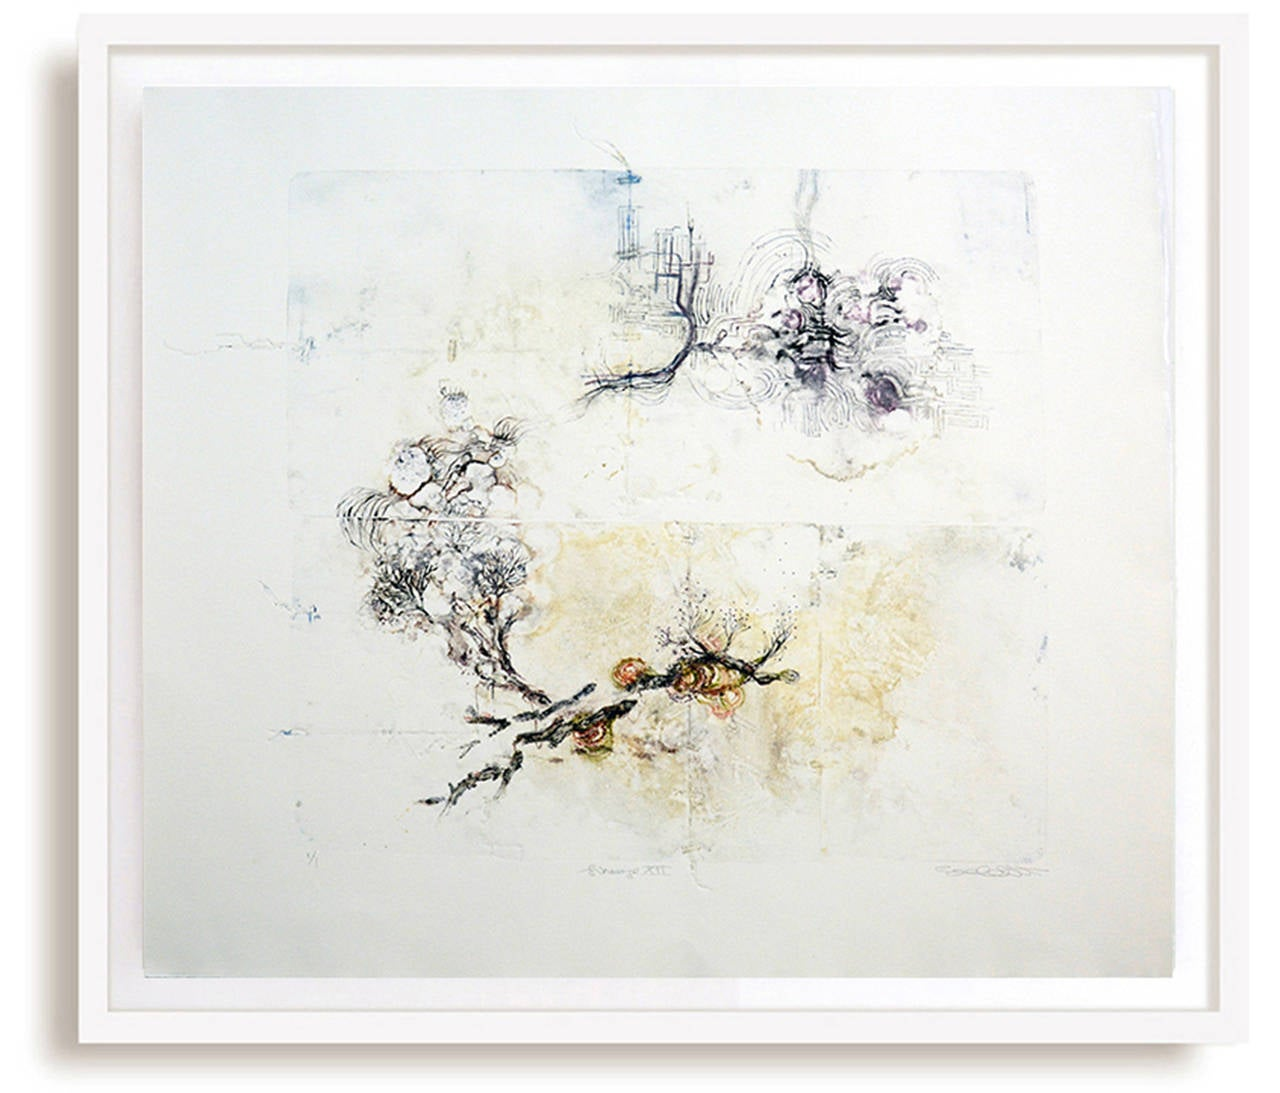 Lineage XII - delicate, copper, oil ink, sketch, monoprint on archival paper